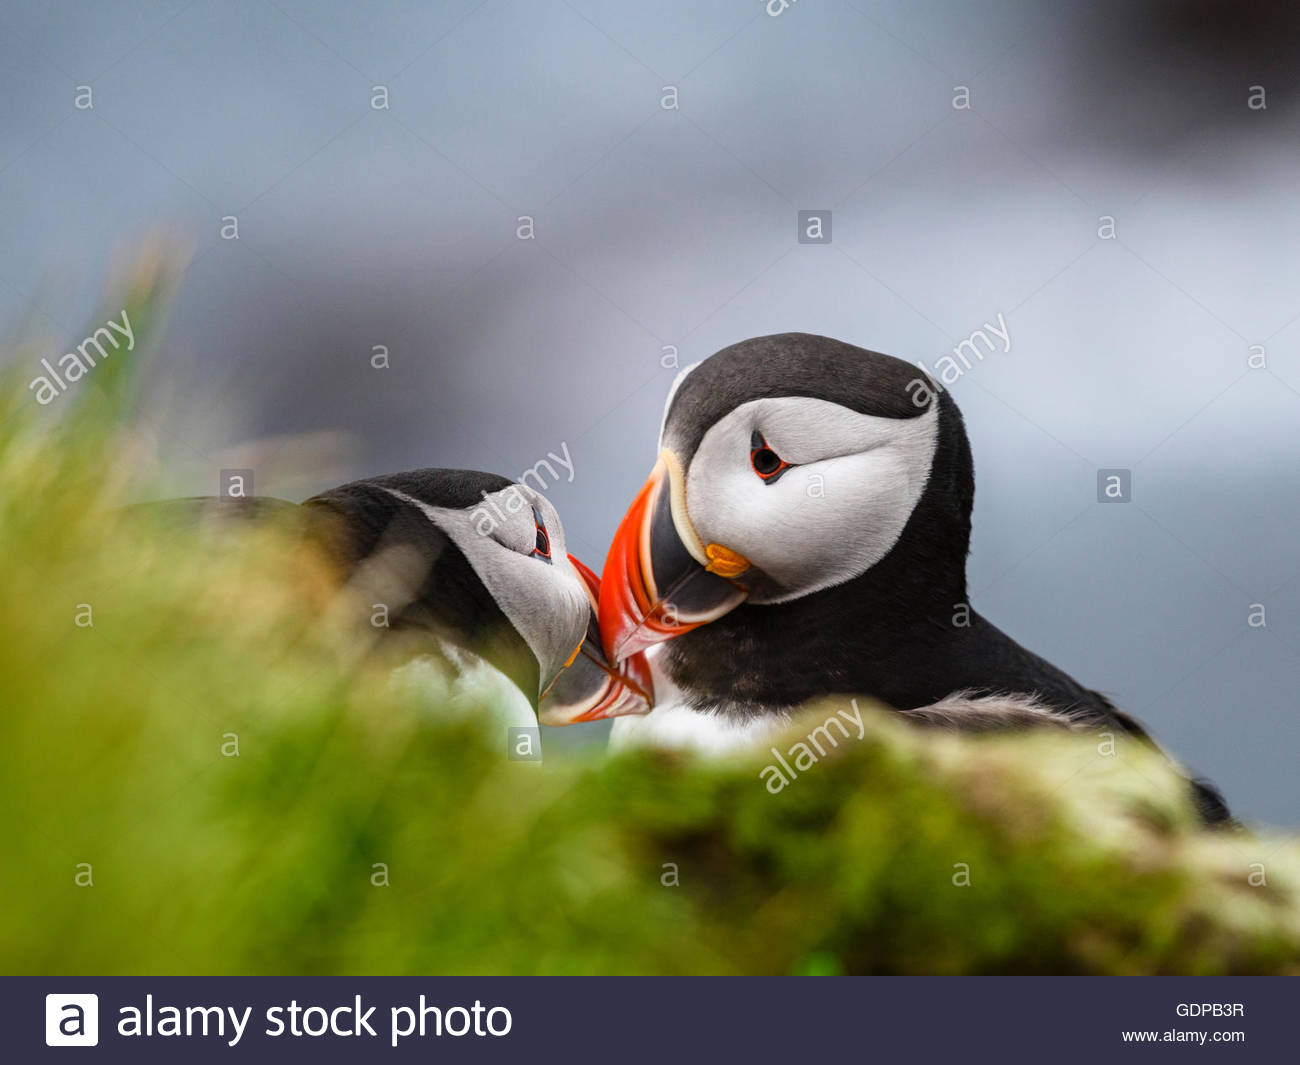 Two puffins touching beaks, Latrabjarg, Westfjords, Iceland - Stock Image